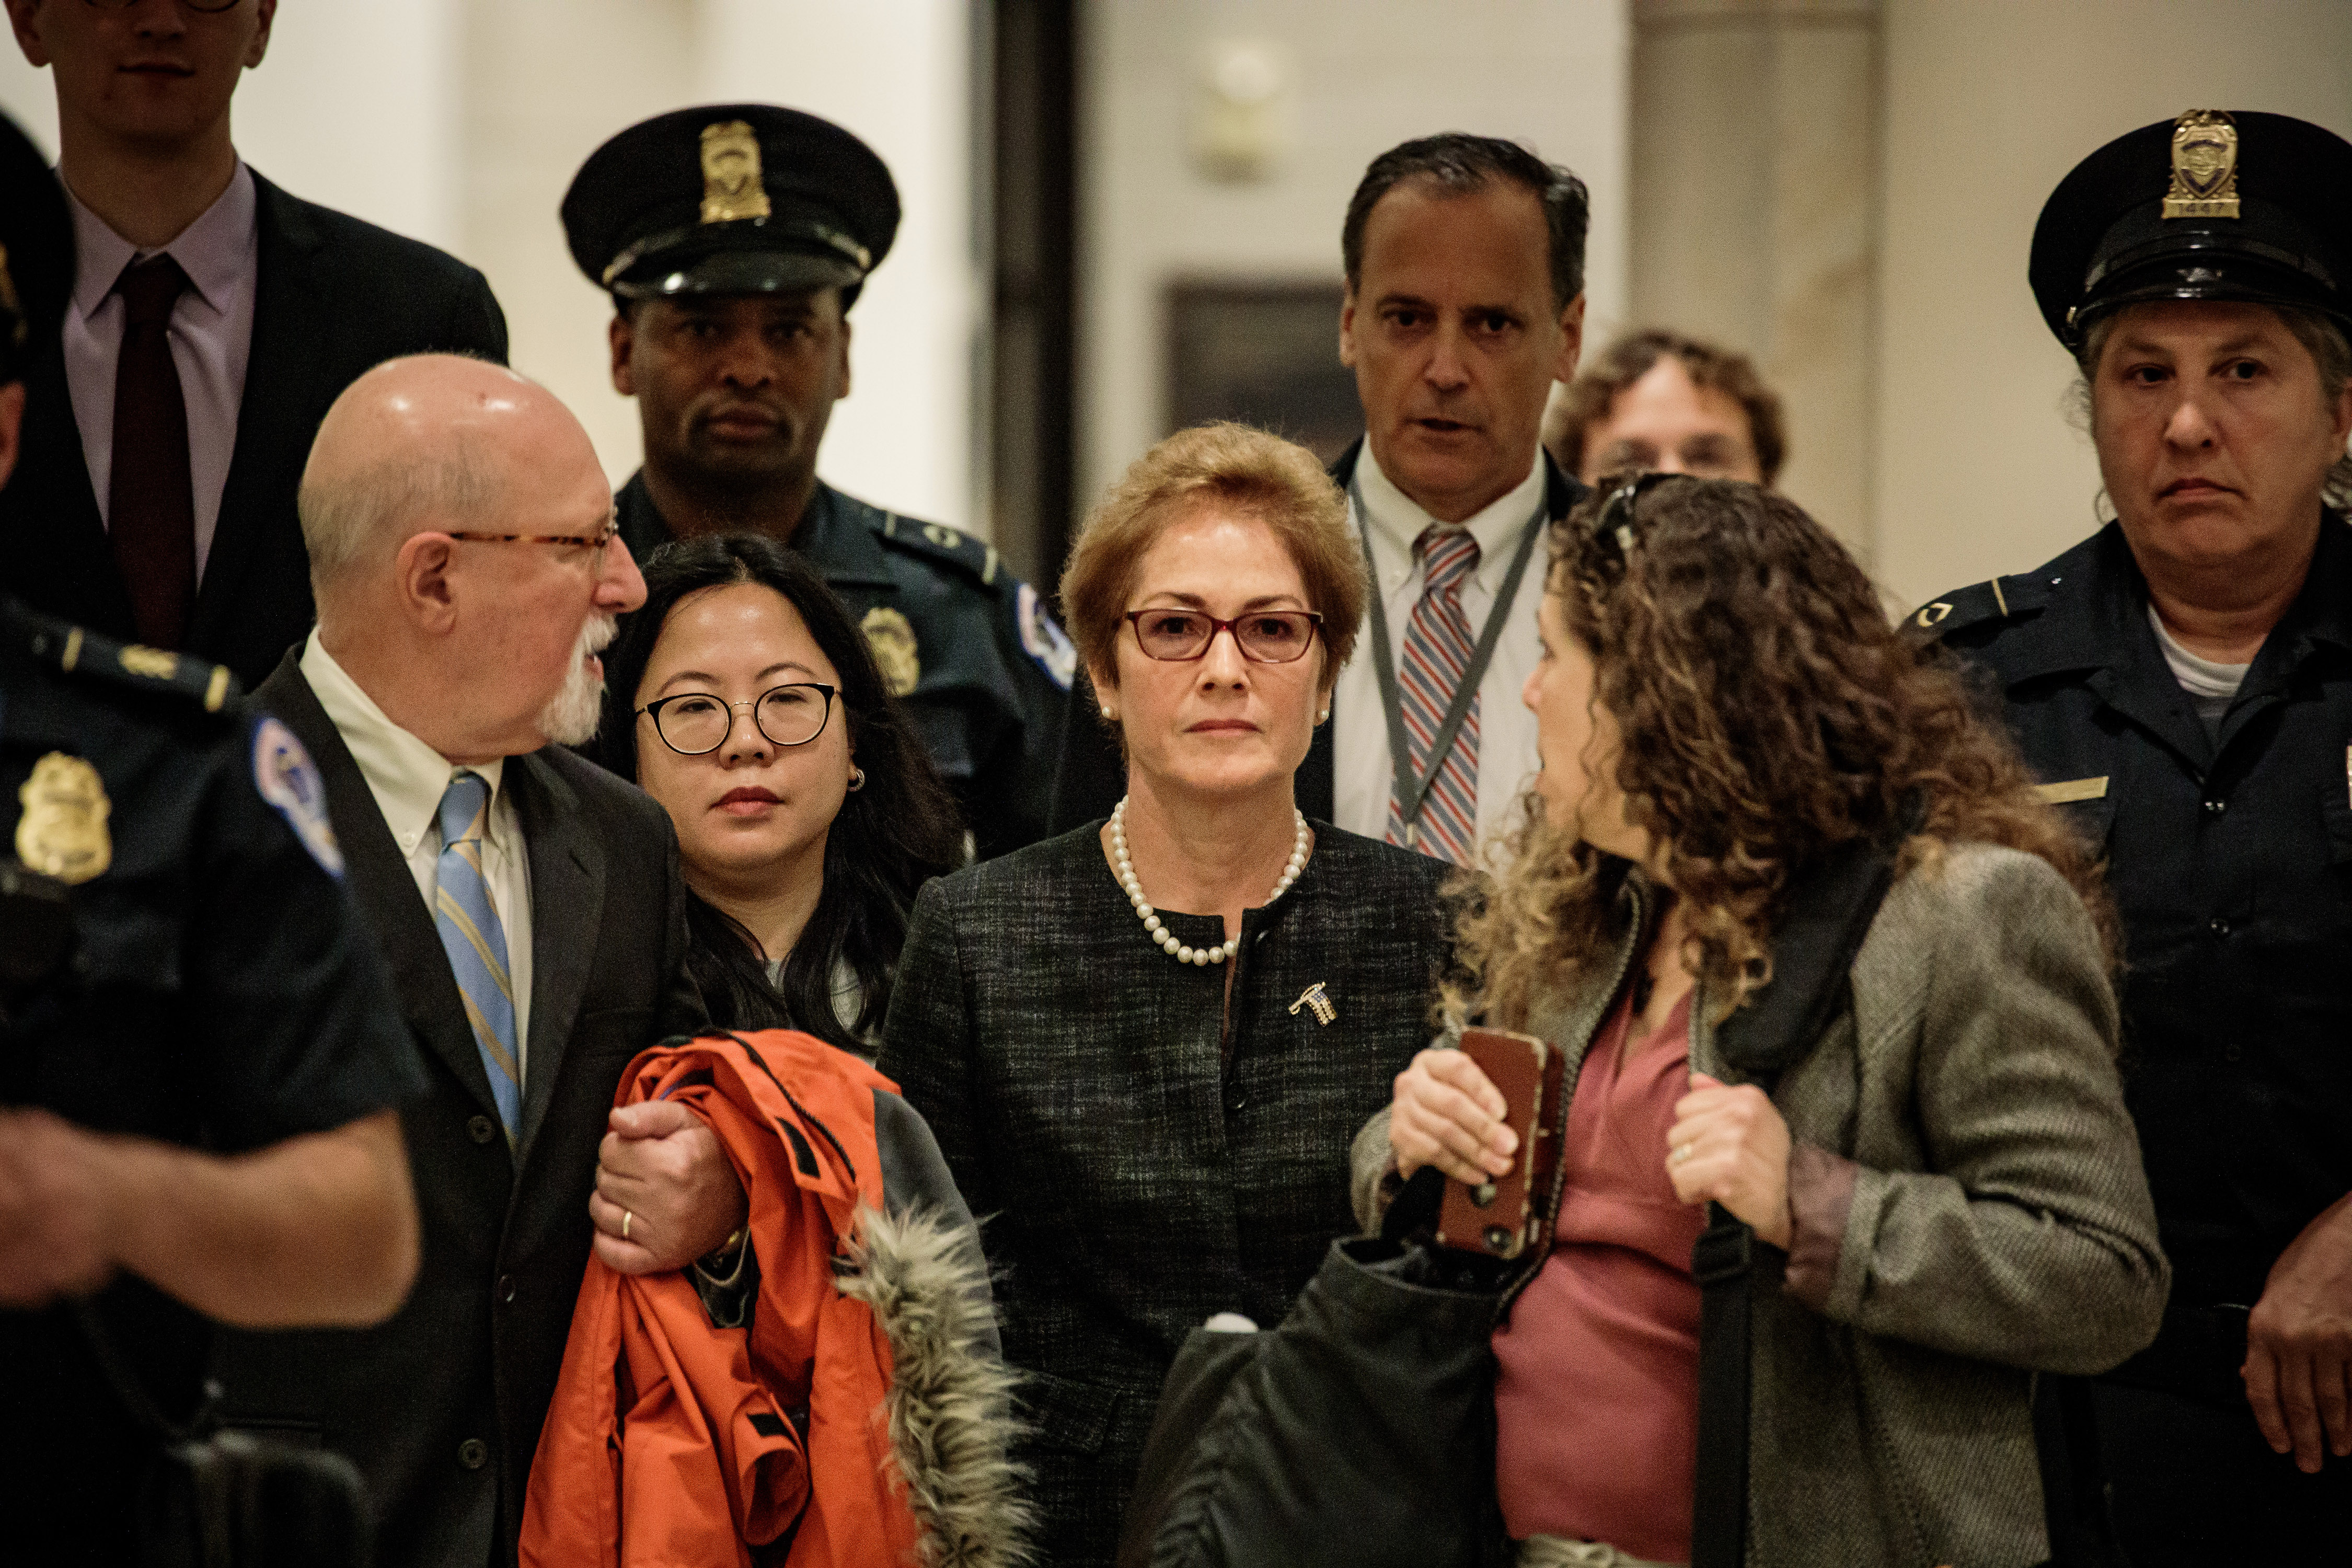 bostonglobe.com - Rachelle G. Cohen - A quiet diplomatic hero ousted for doing her job